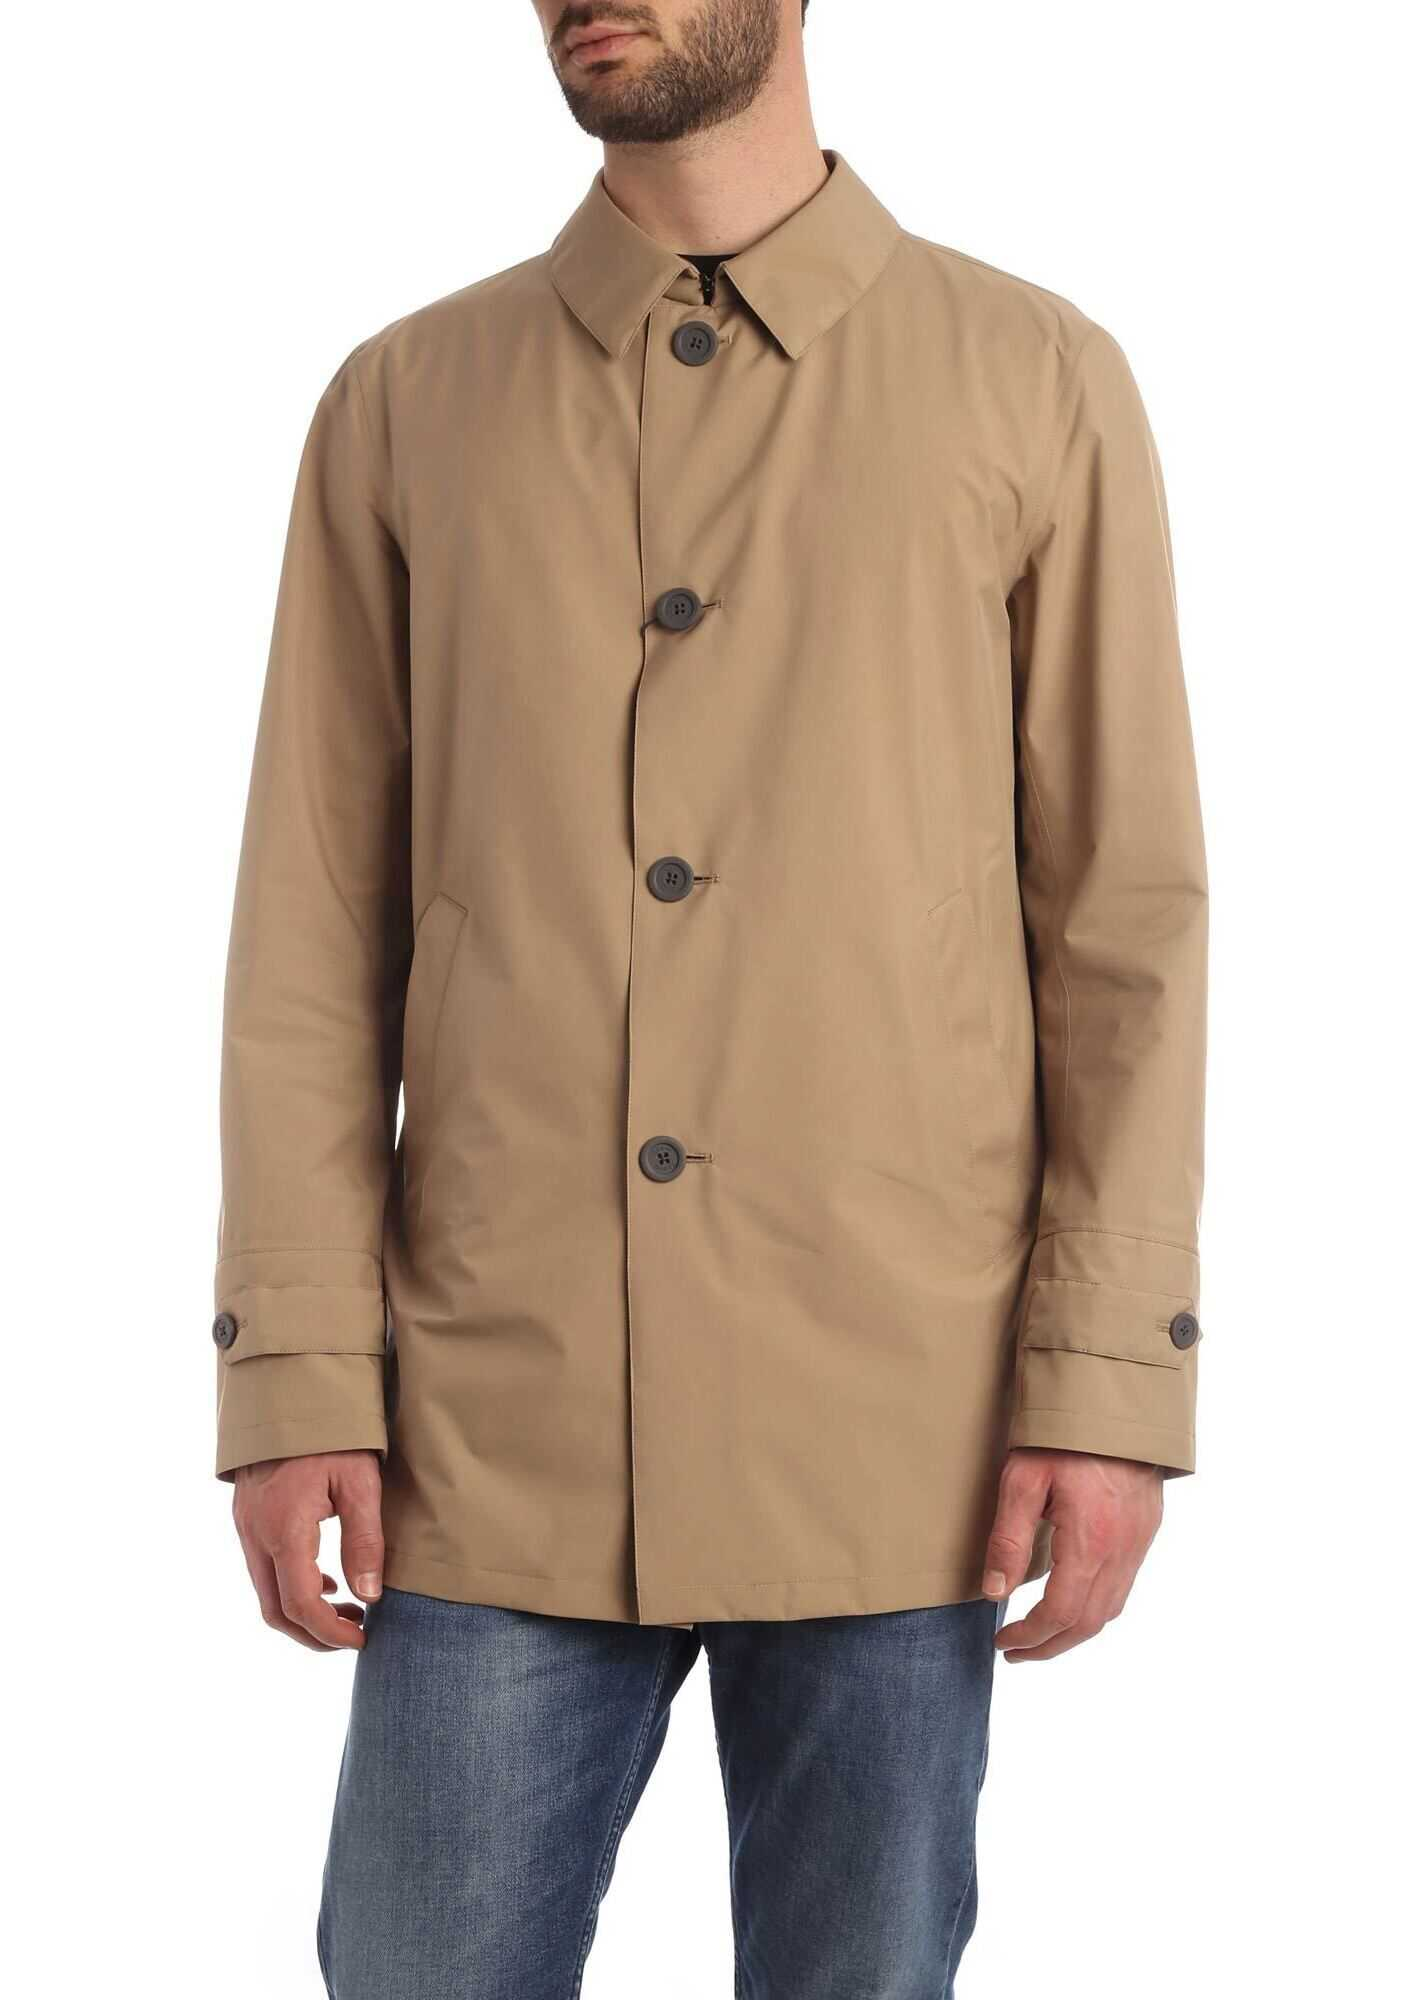 Herno Overcoat In Camel Color With Hat Camel imagine